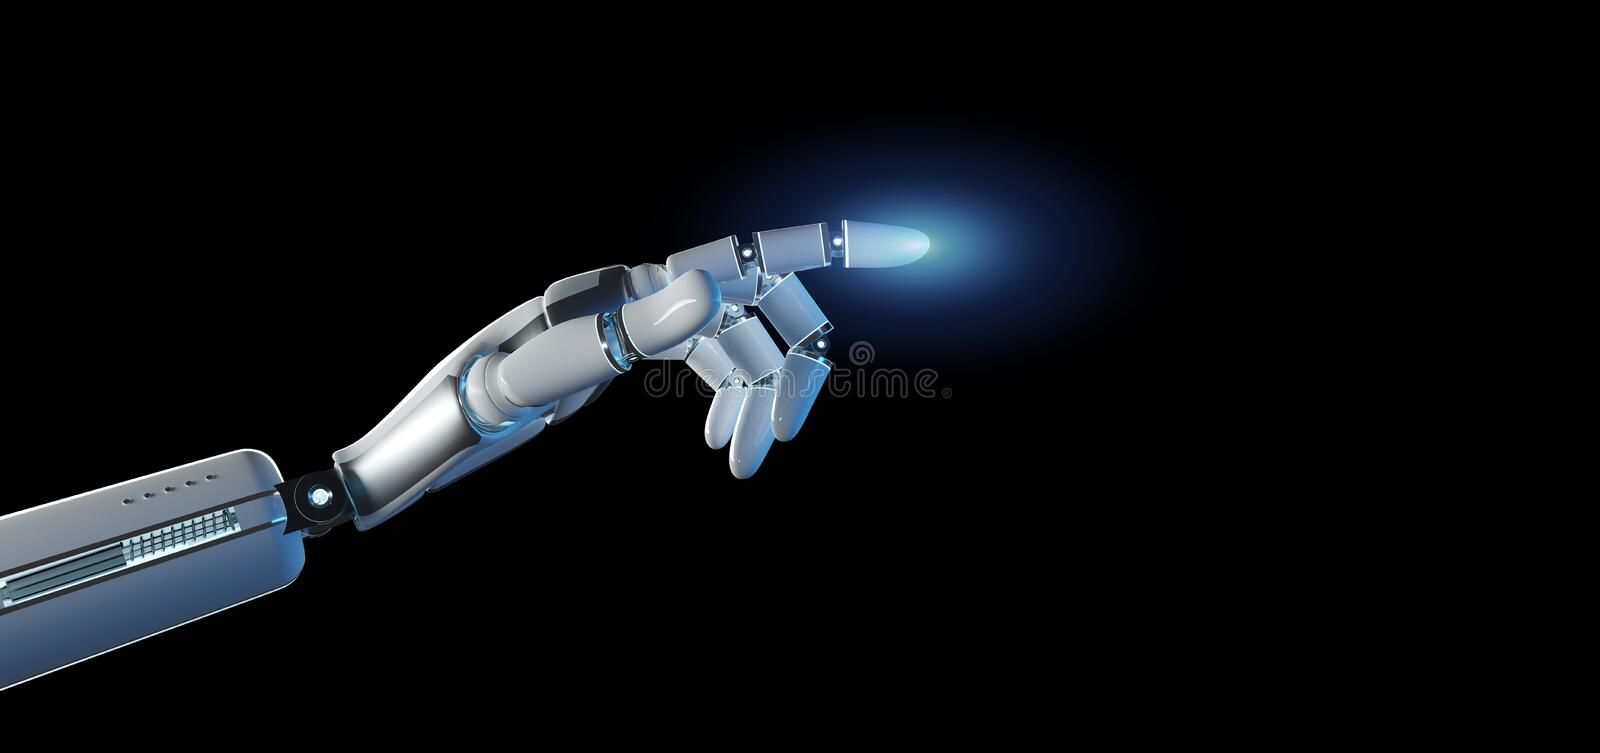 Cyborg robot hand on an uniform background 3d rendering royalty free illustration